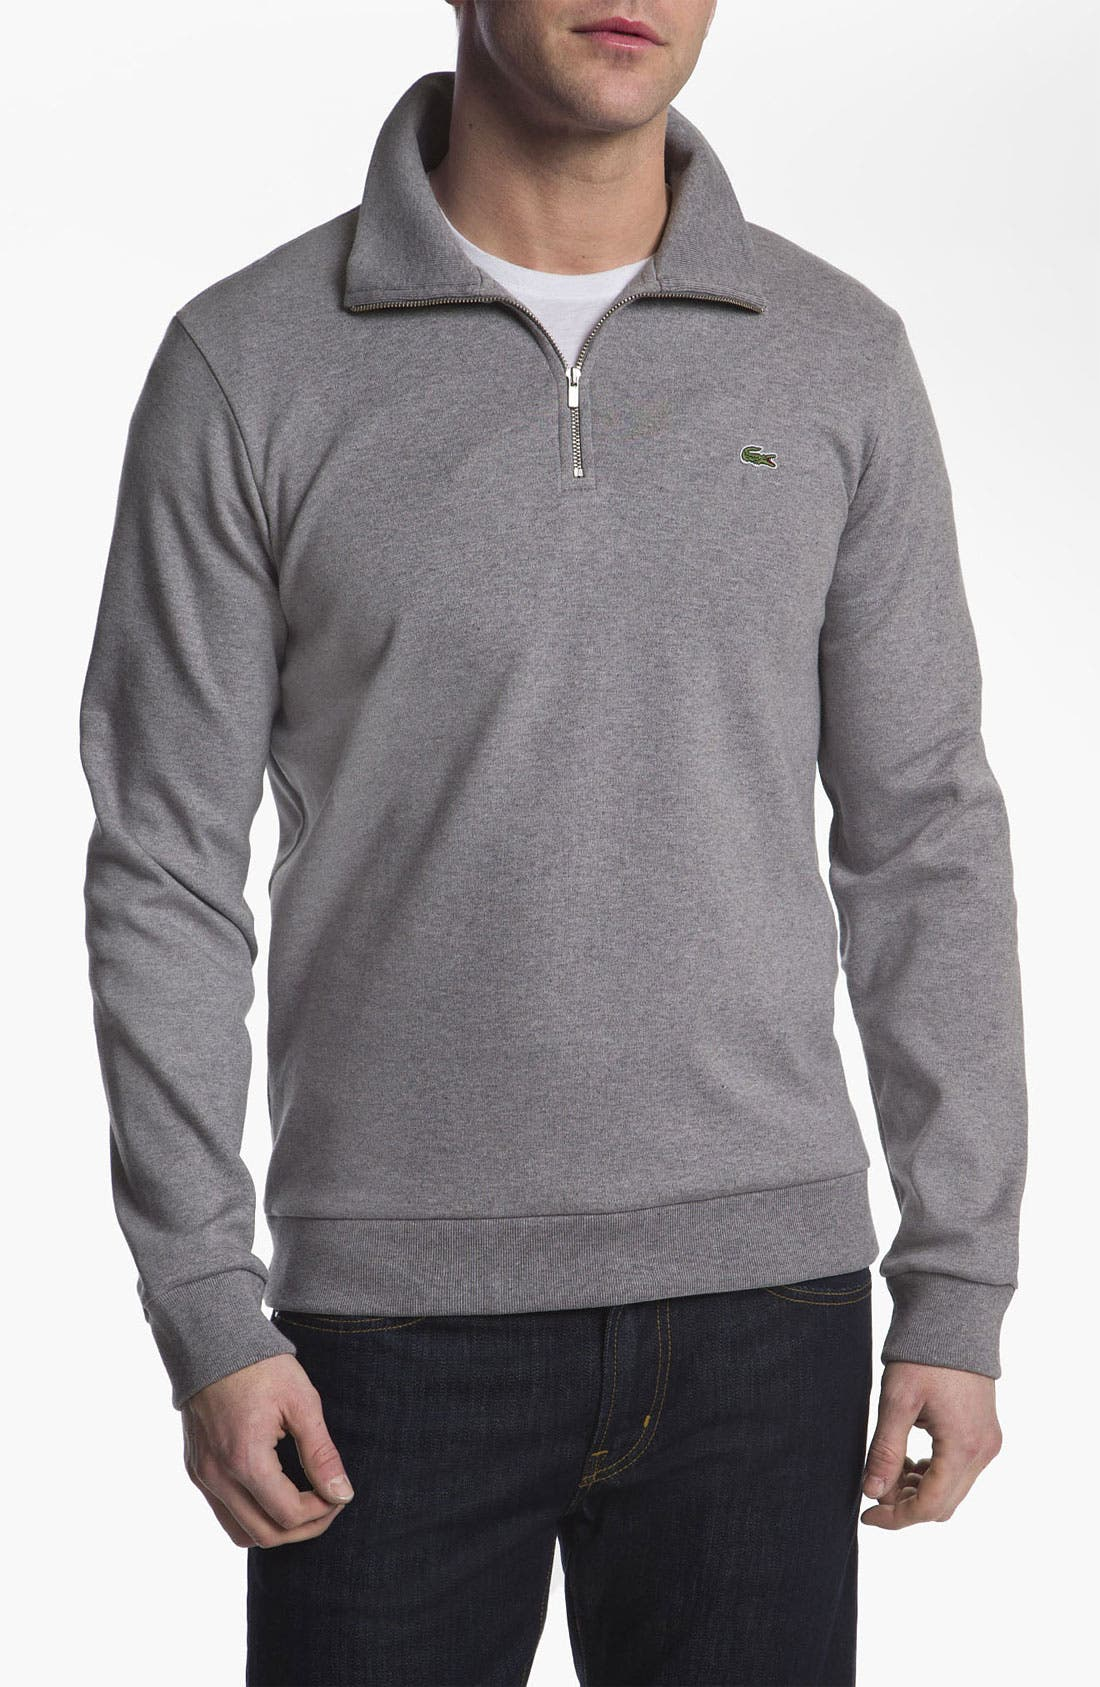 Alternate Image 1 Selected - Lacoste Quarter Zip Sweater